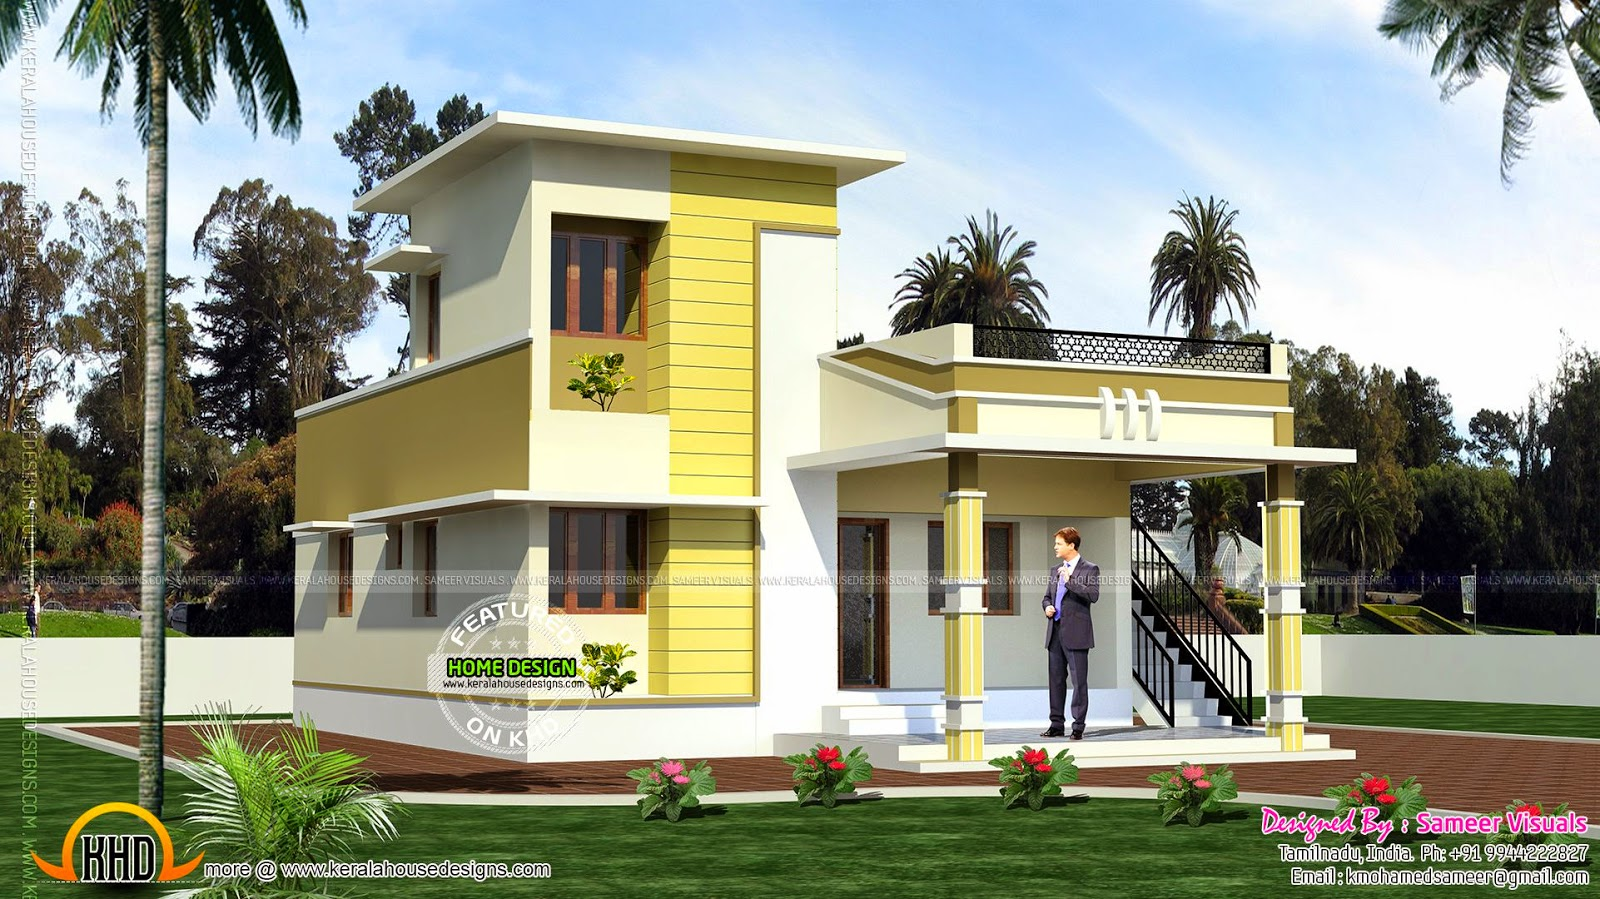 Single storied tamilnadu home kerala home design and for Traditional house designs in tamilnadu